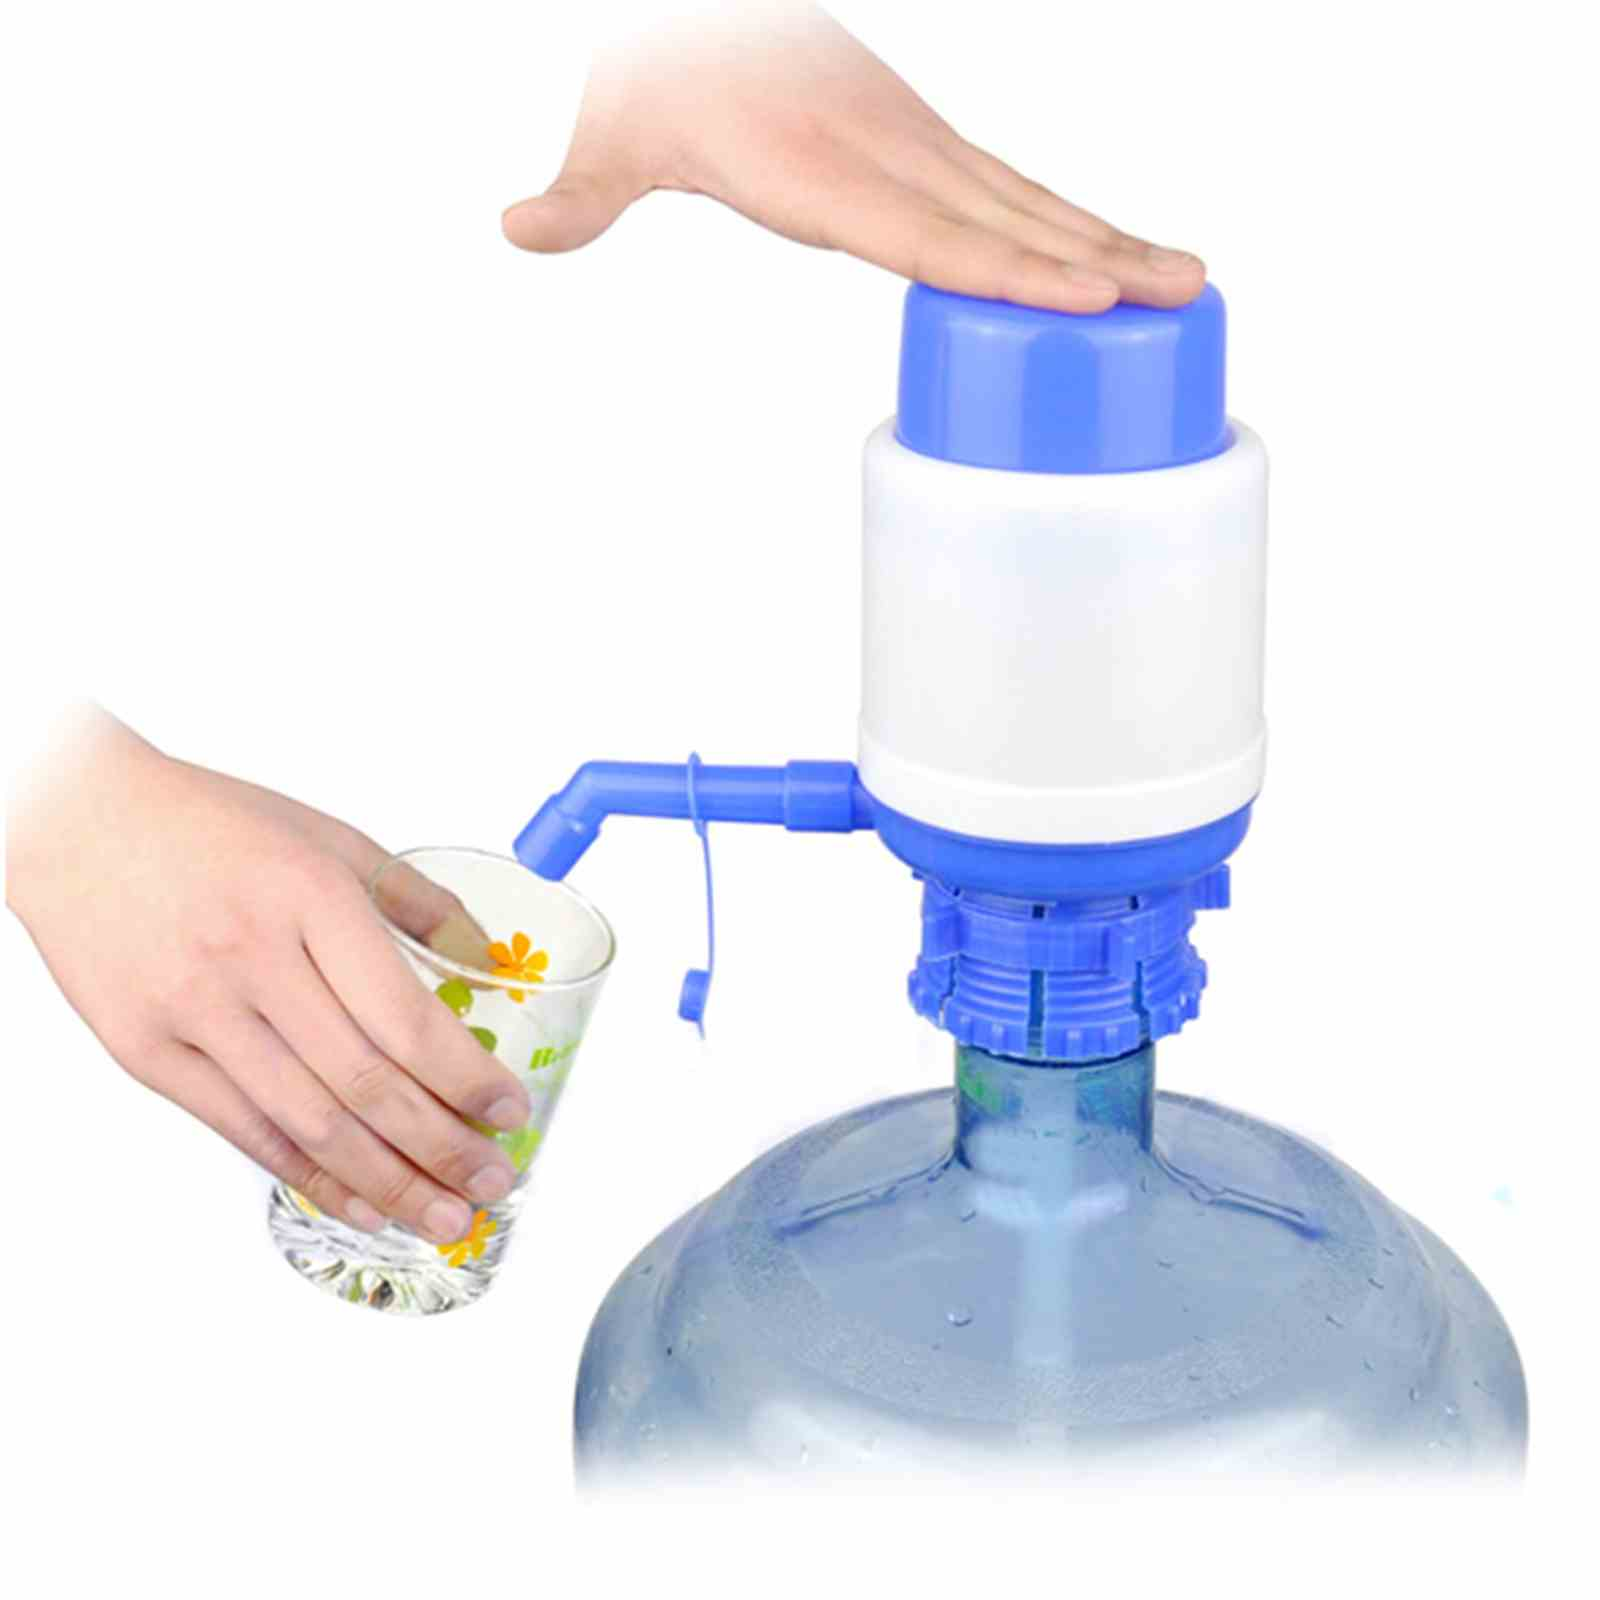 Jeobest Drinking Water Hand Press Pump for Bottled Water Dispenser 5 Gallon Home Office MZ